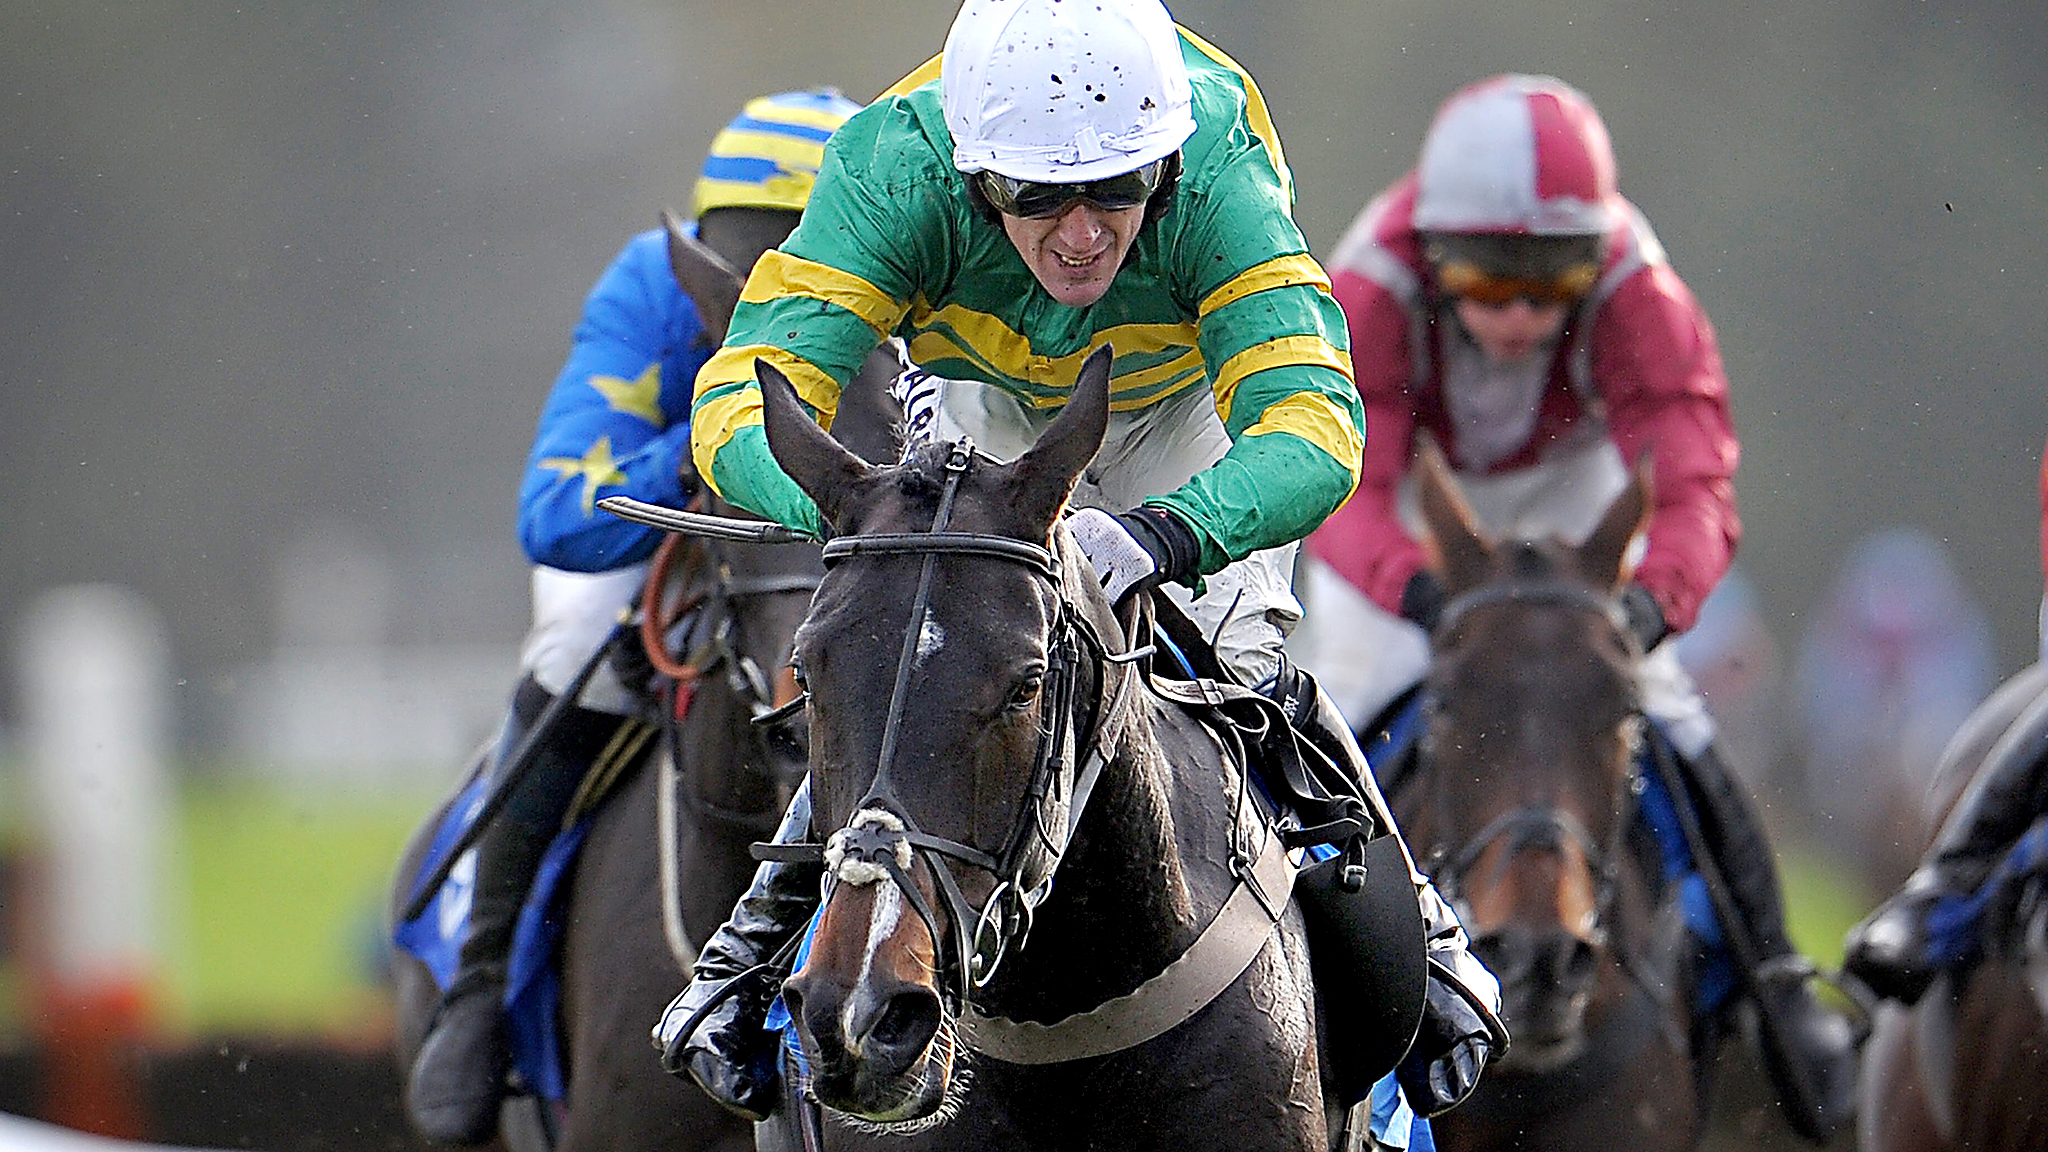 Jockey Tony McCoy rides 'Keen Eye' during the second race at Exeter Racecourse, Exeter. Despite having two rides, McCoy remains on 3,998 winners, and still chasing a record breaking 4,000th winner over jumps. He has two rides at Chepstow races tomorrow.